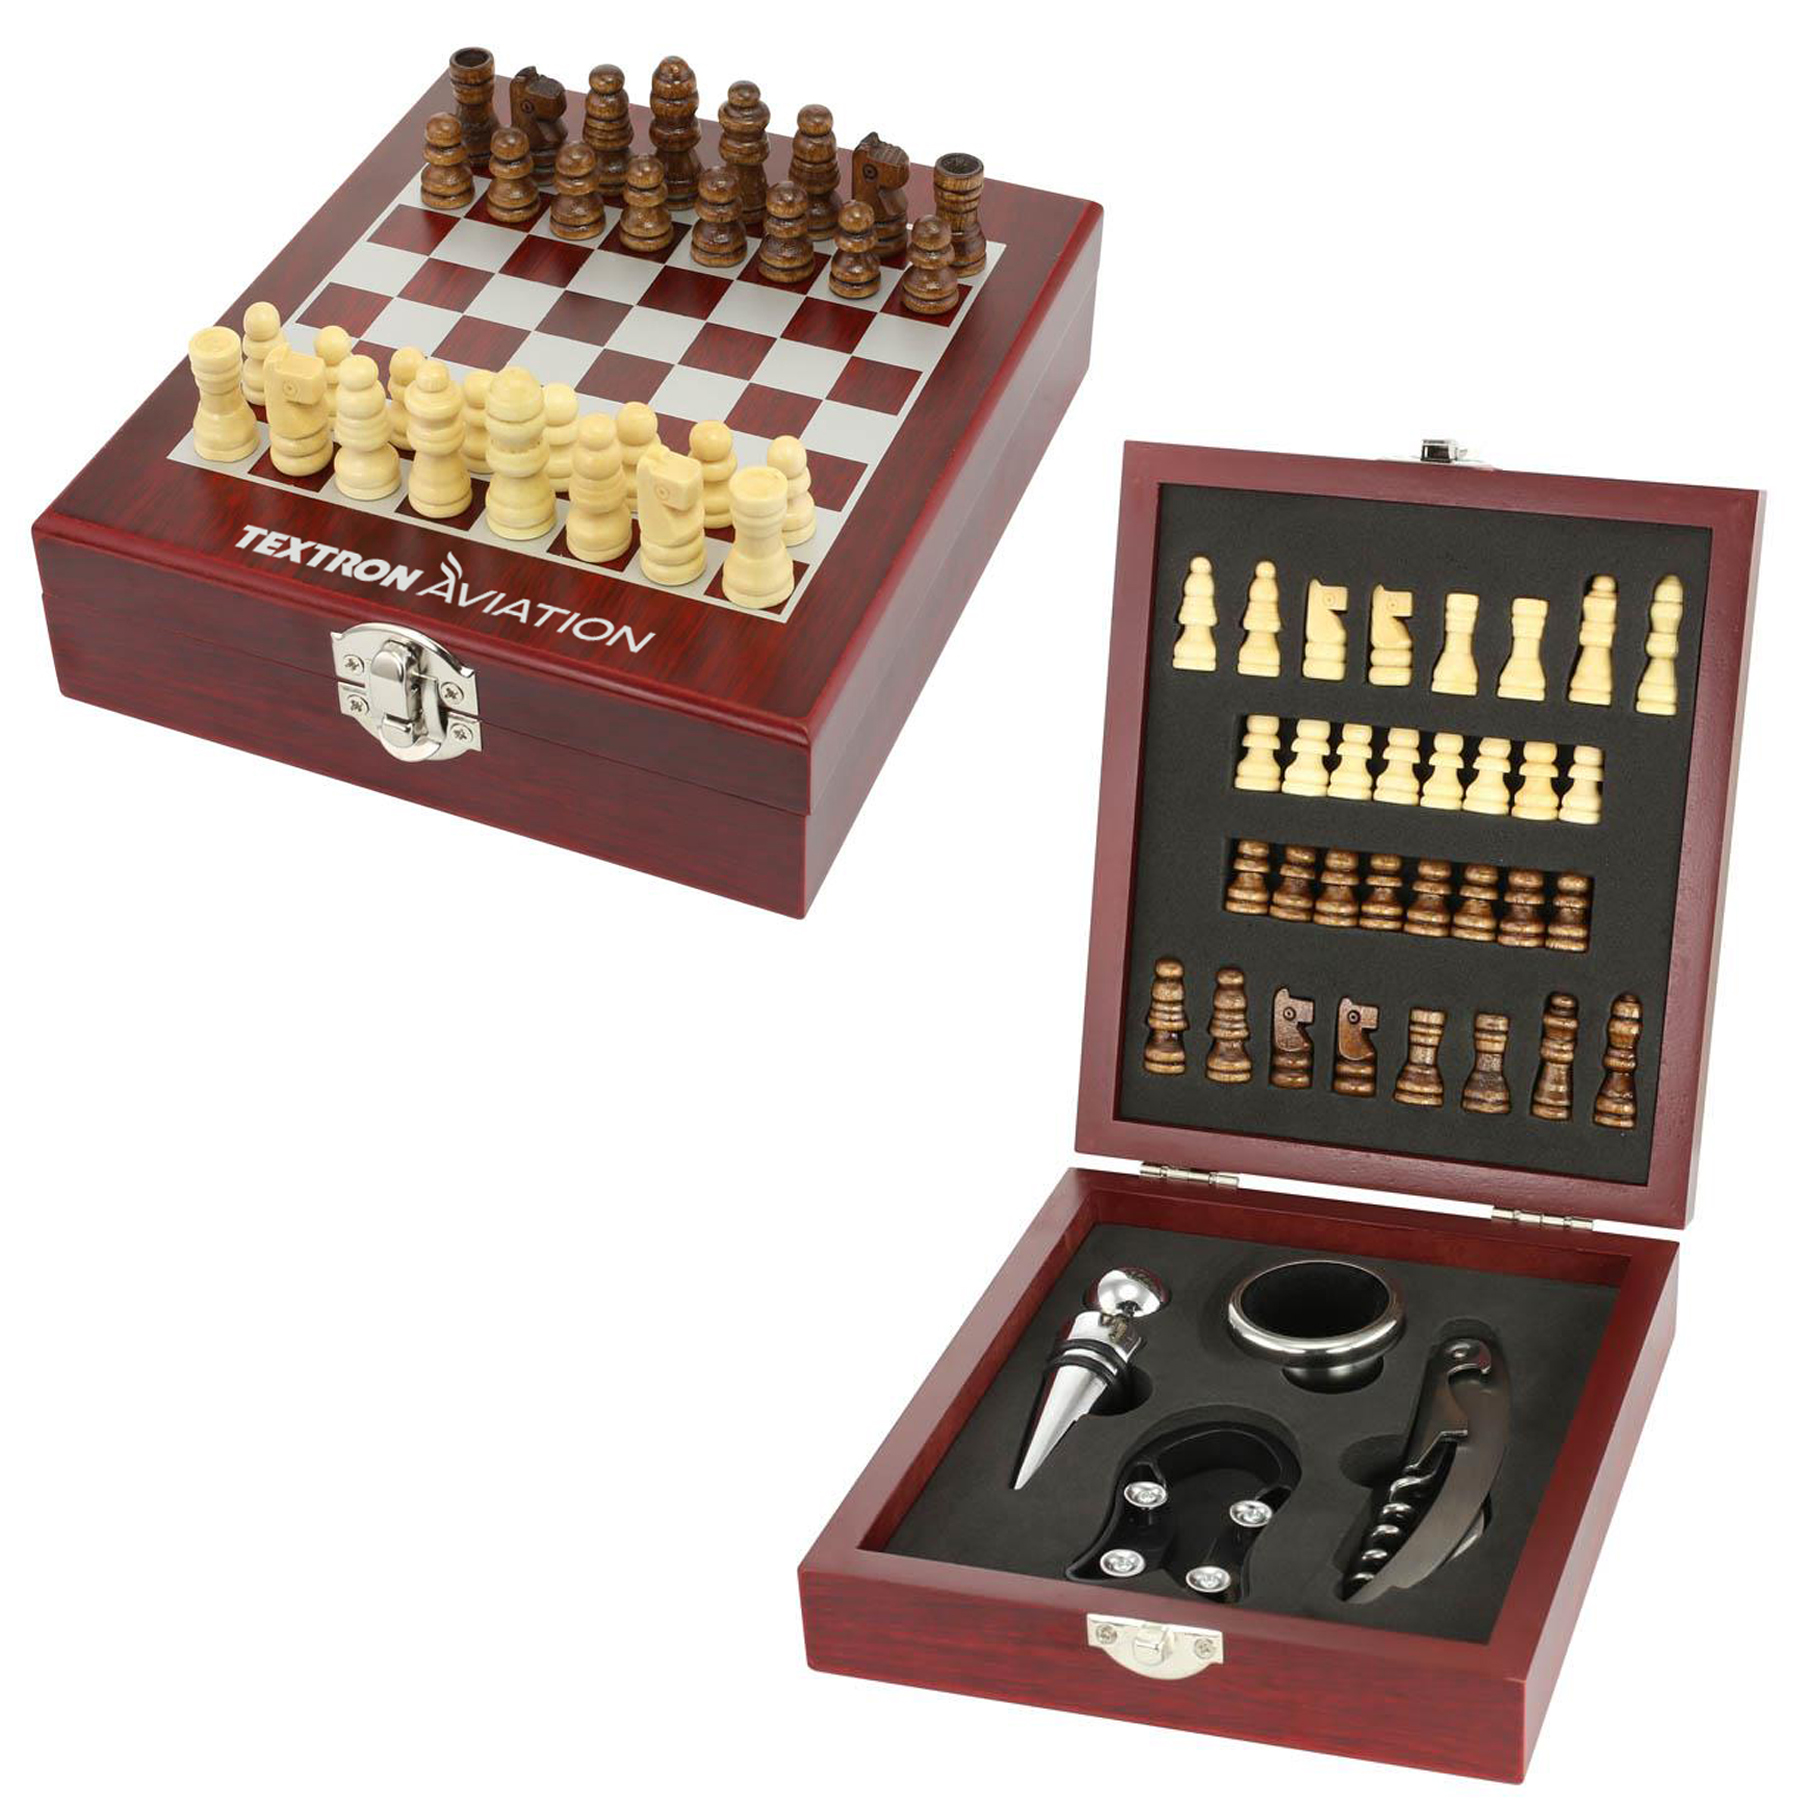 WINE TOOL KIT AND CHESS SET